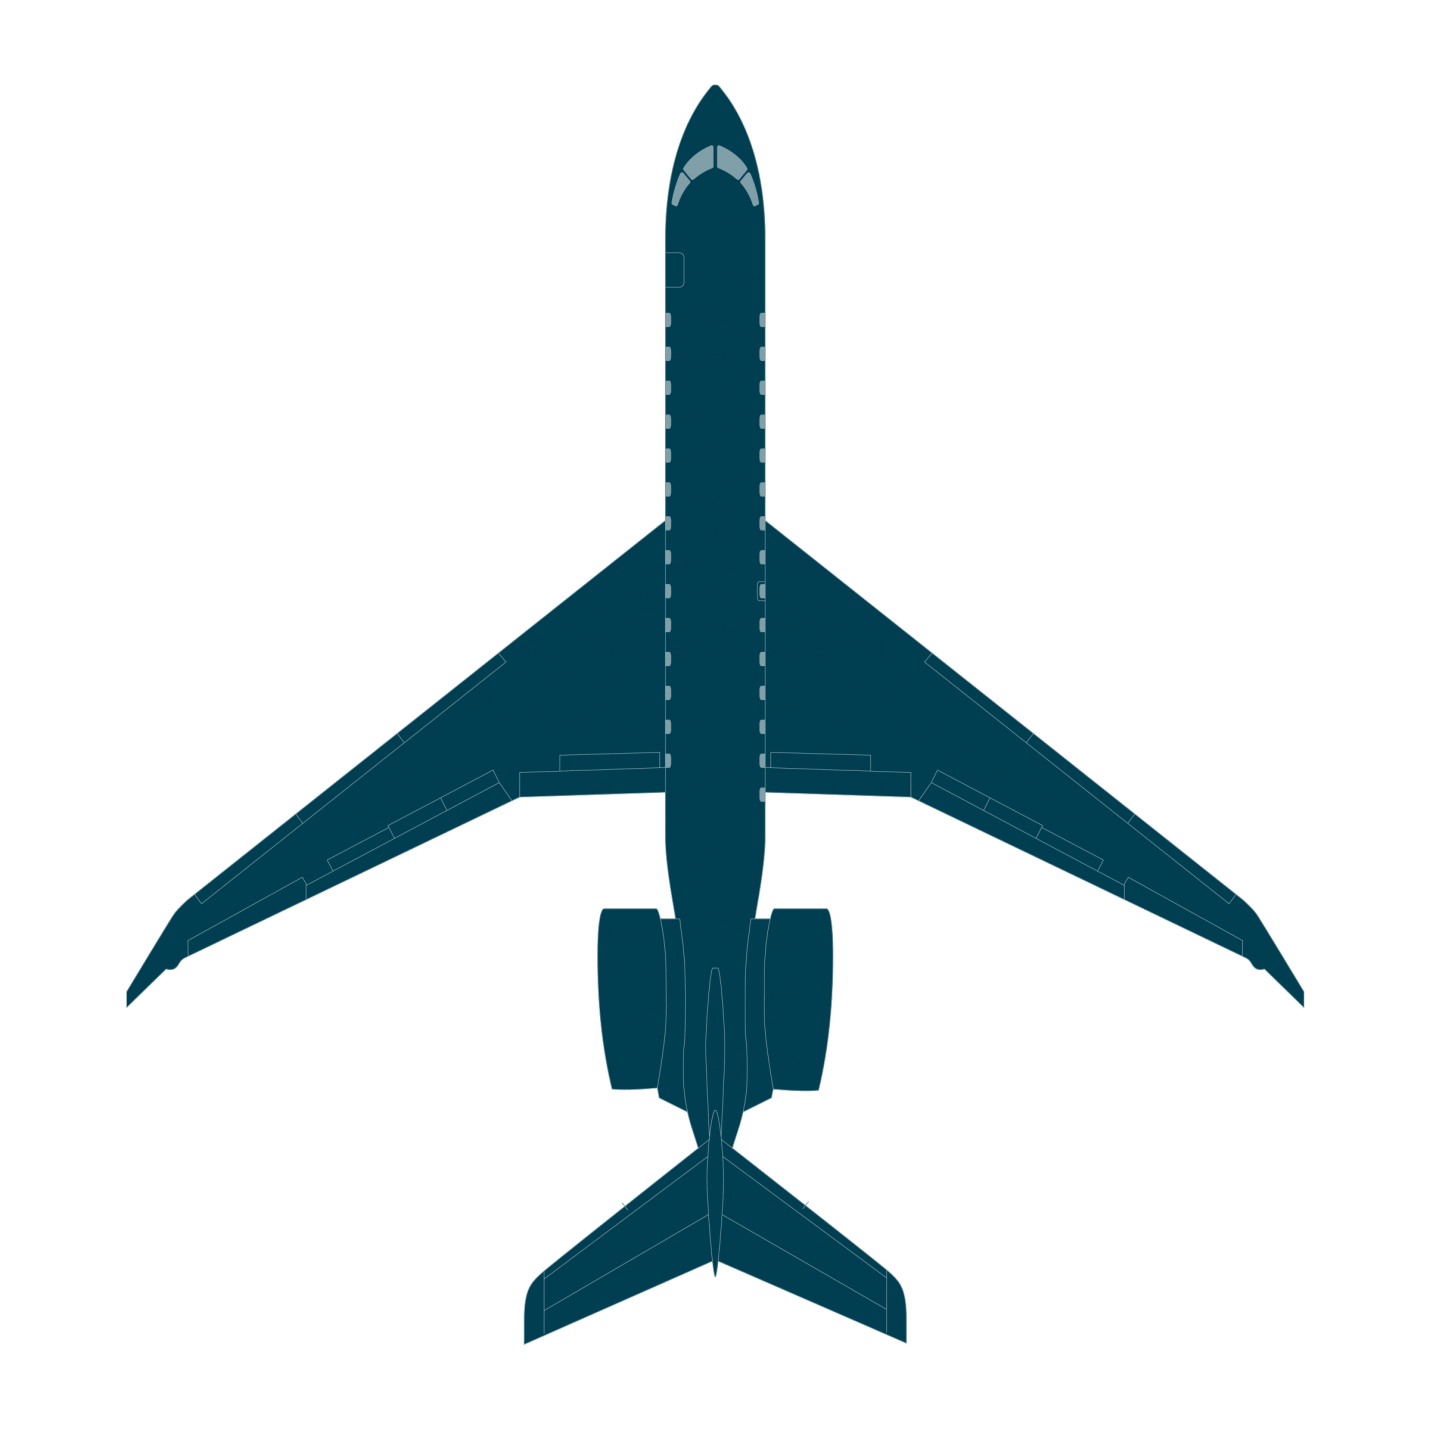 Drawing airplane passenger jet. Global bombardier business aircraft